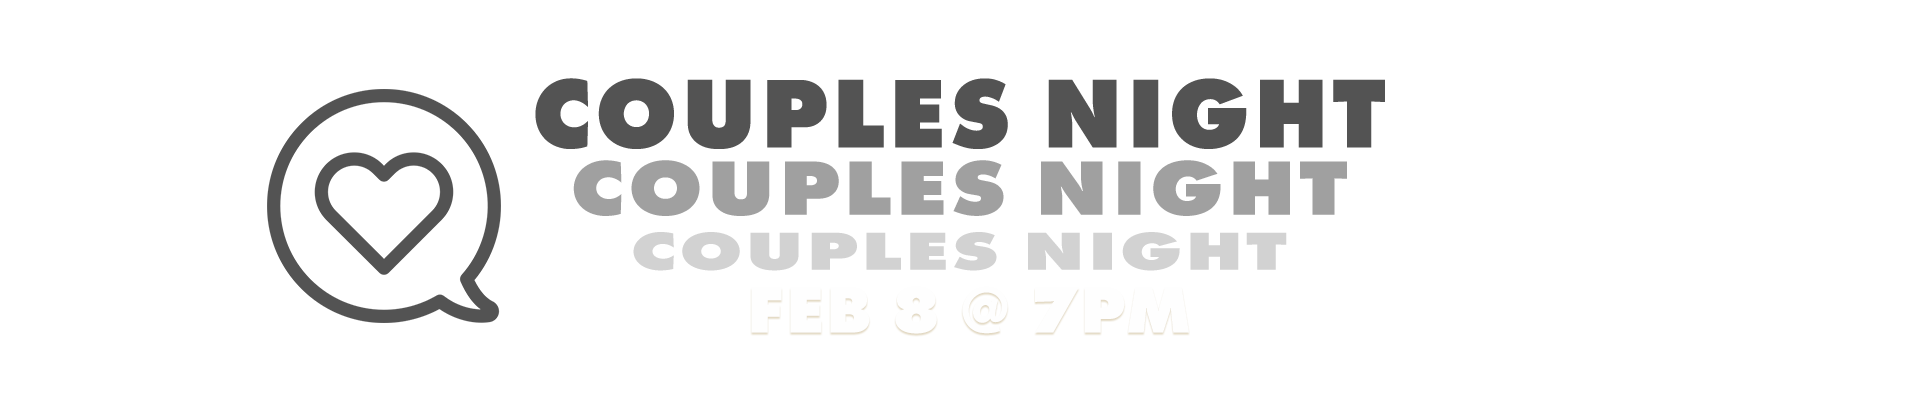 Couples Night February 8 at 7pm